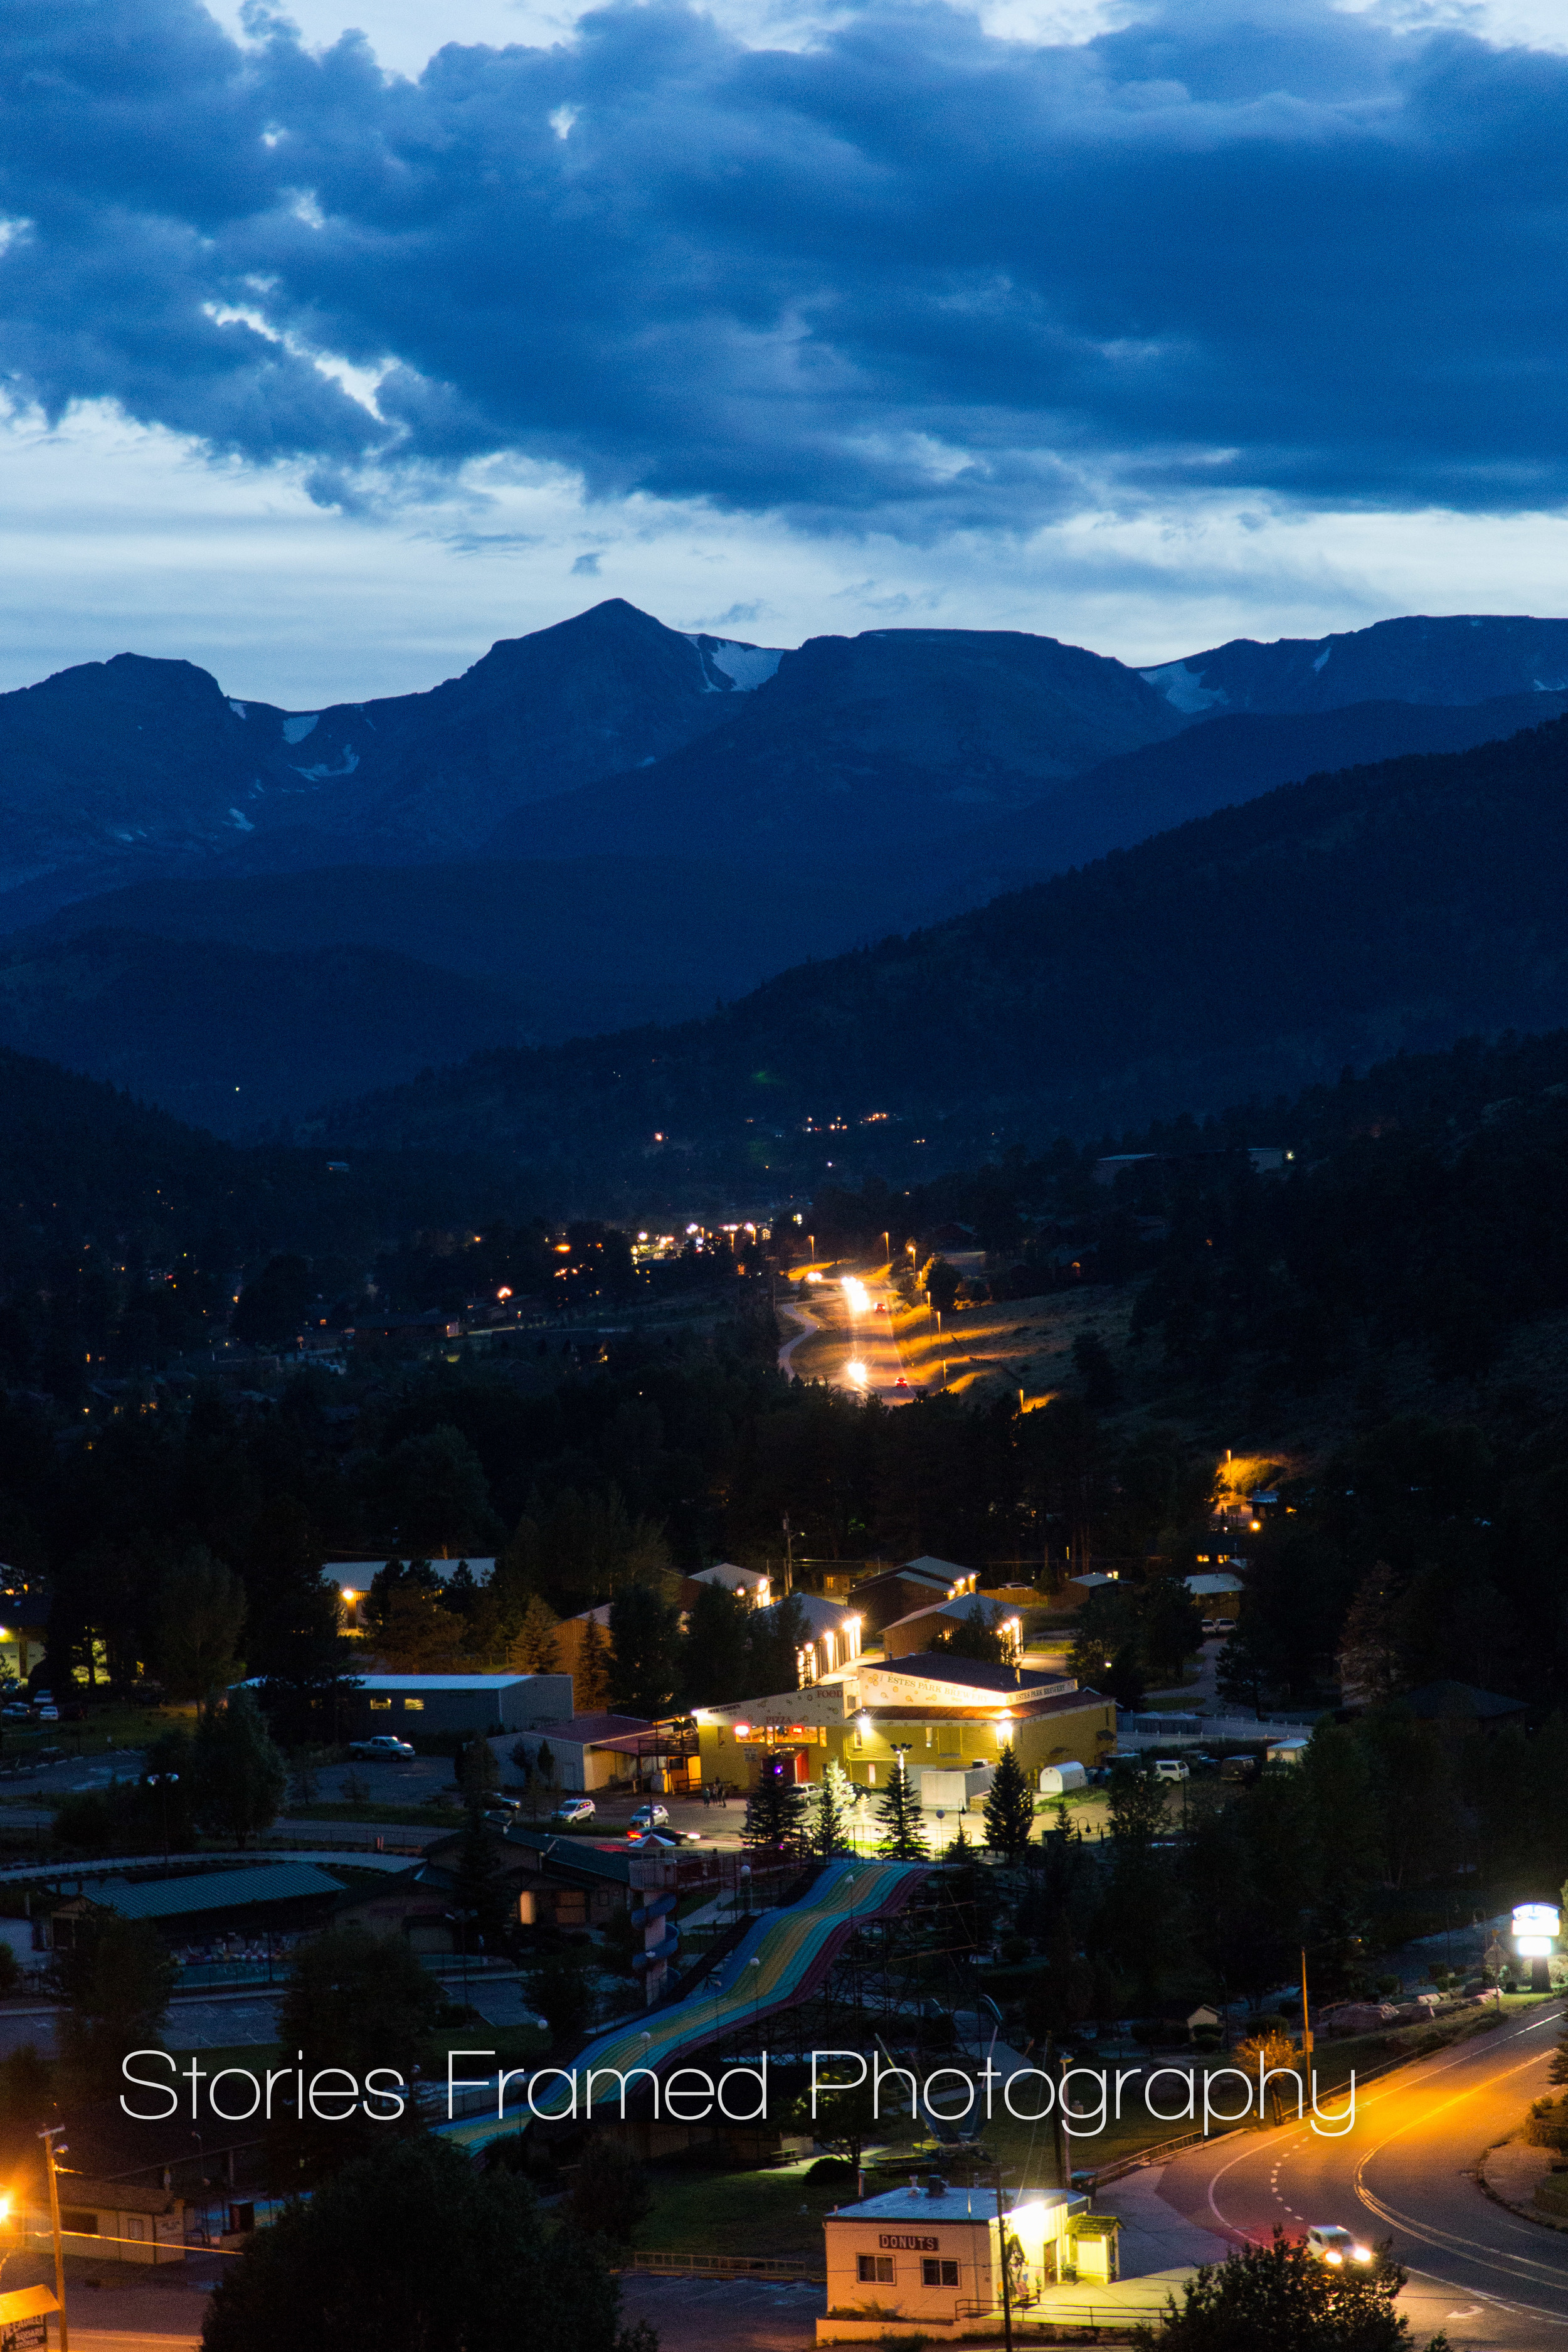 This was the view of Estes Park from our rental.